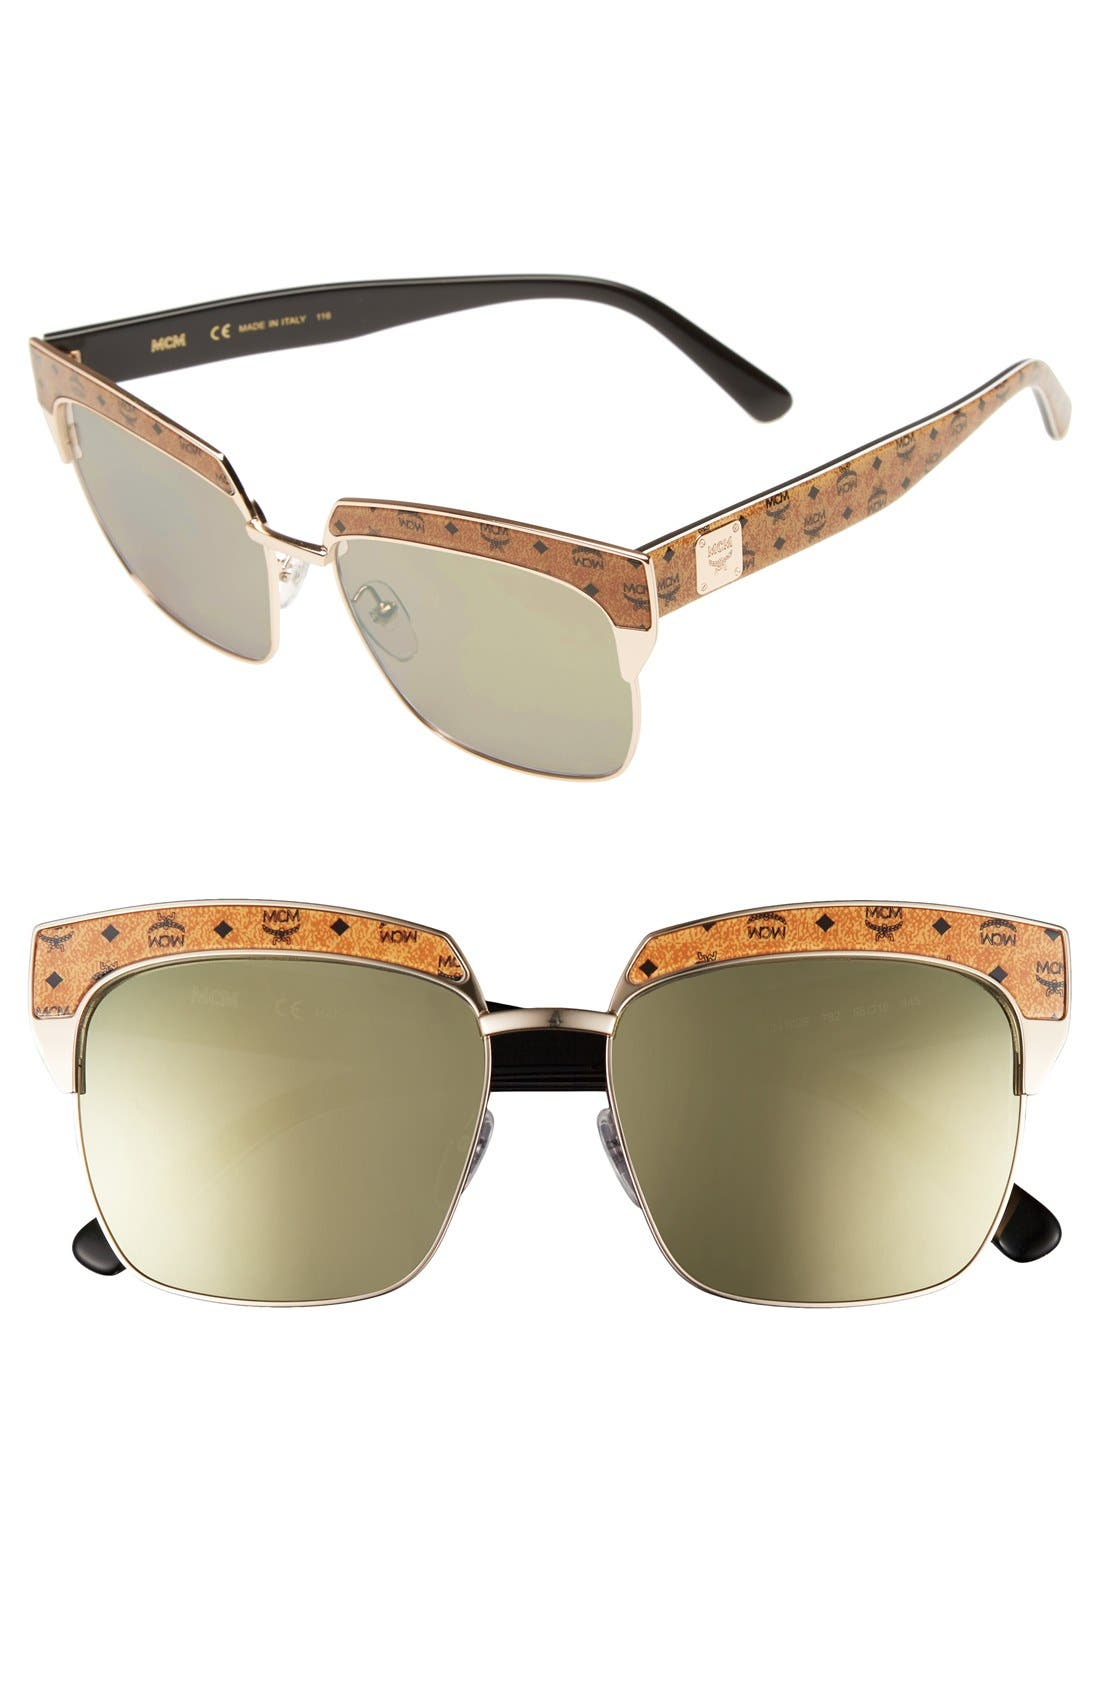 MCM 'Visetos' 56mm Retro Sunglasses